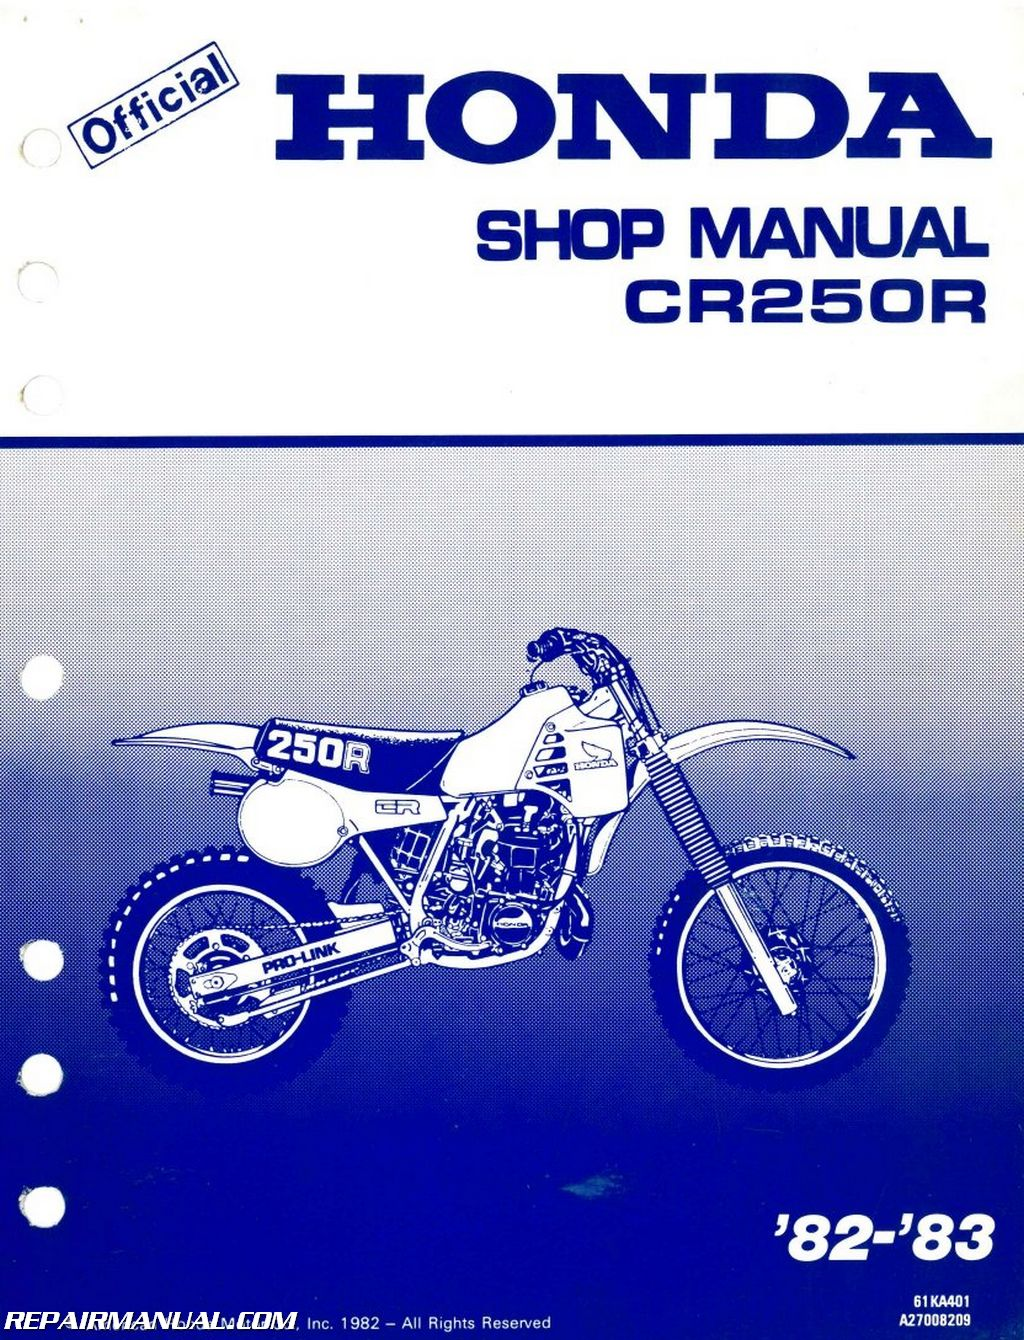 1982 1983 honda cr250r service manual rh repairmanual com honda crf250r service manual pdf 2003 honda cr250r service manual pdf